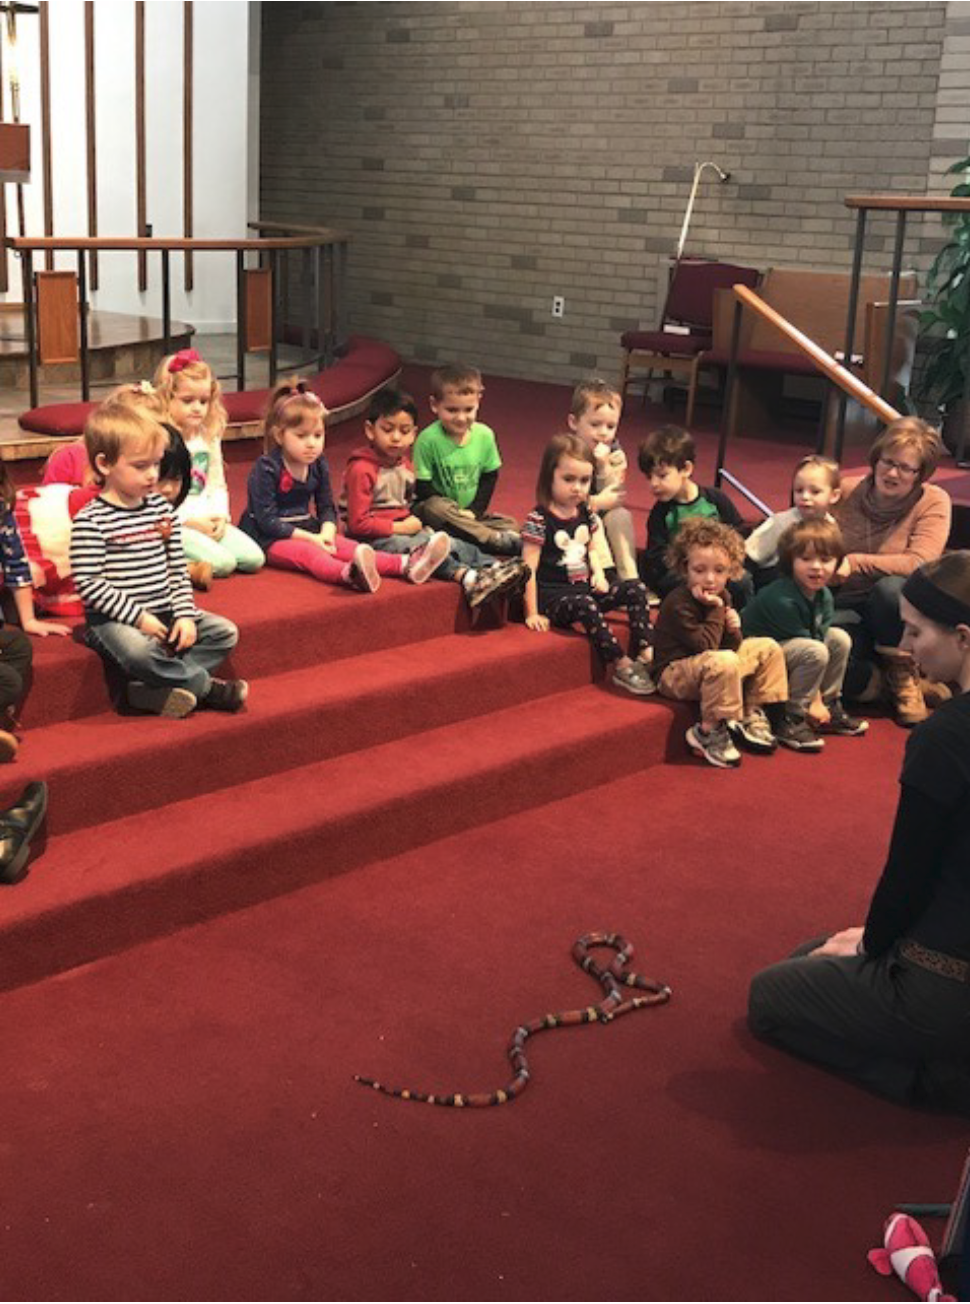 Yes….that is a milk snake slithering around in the sanctuary. YIKES!!